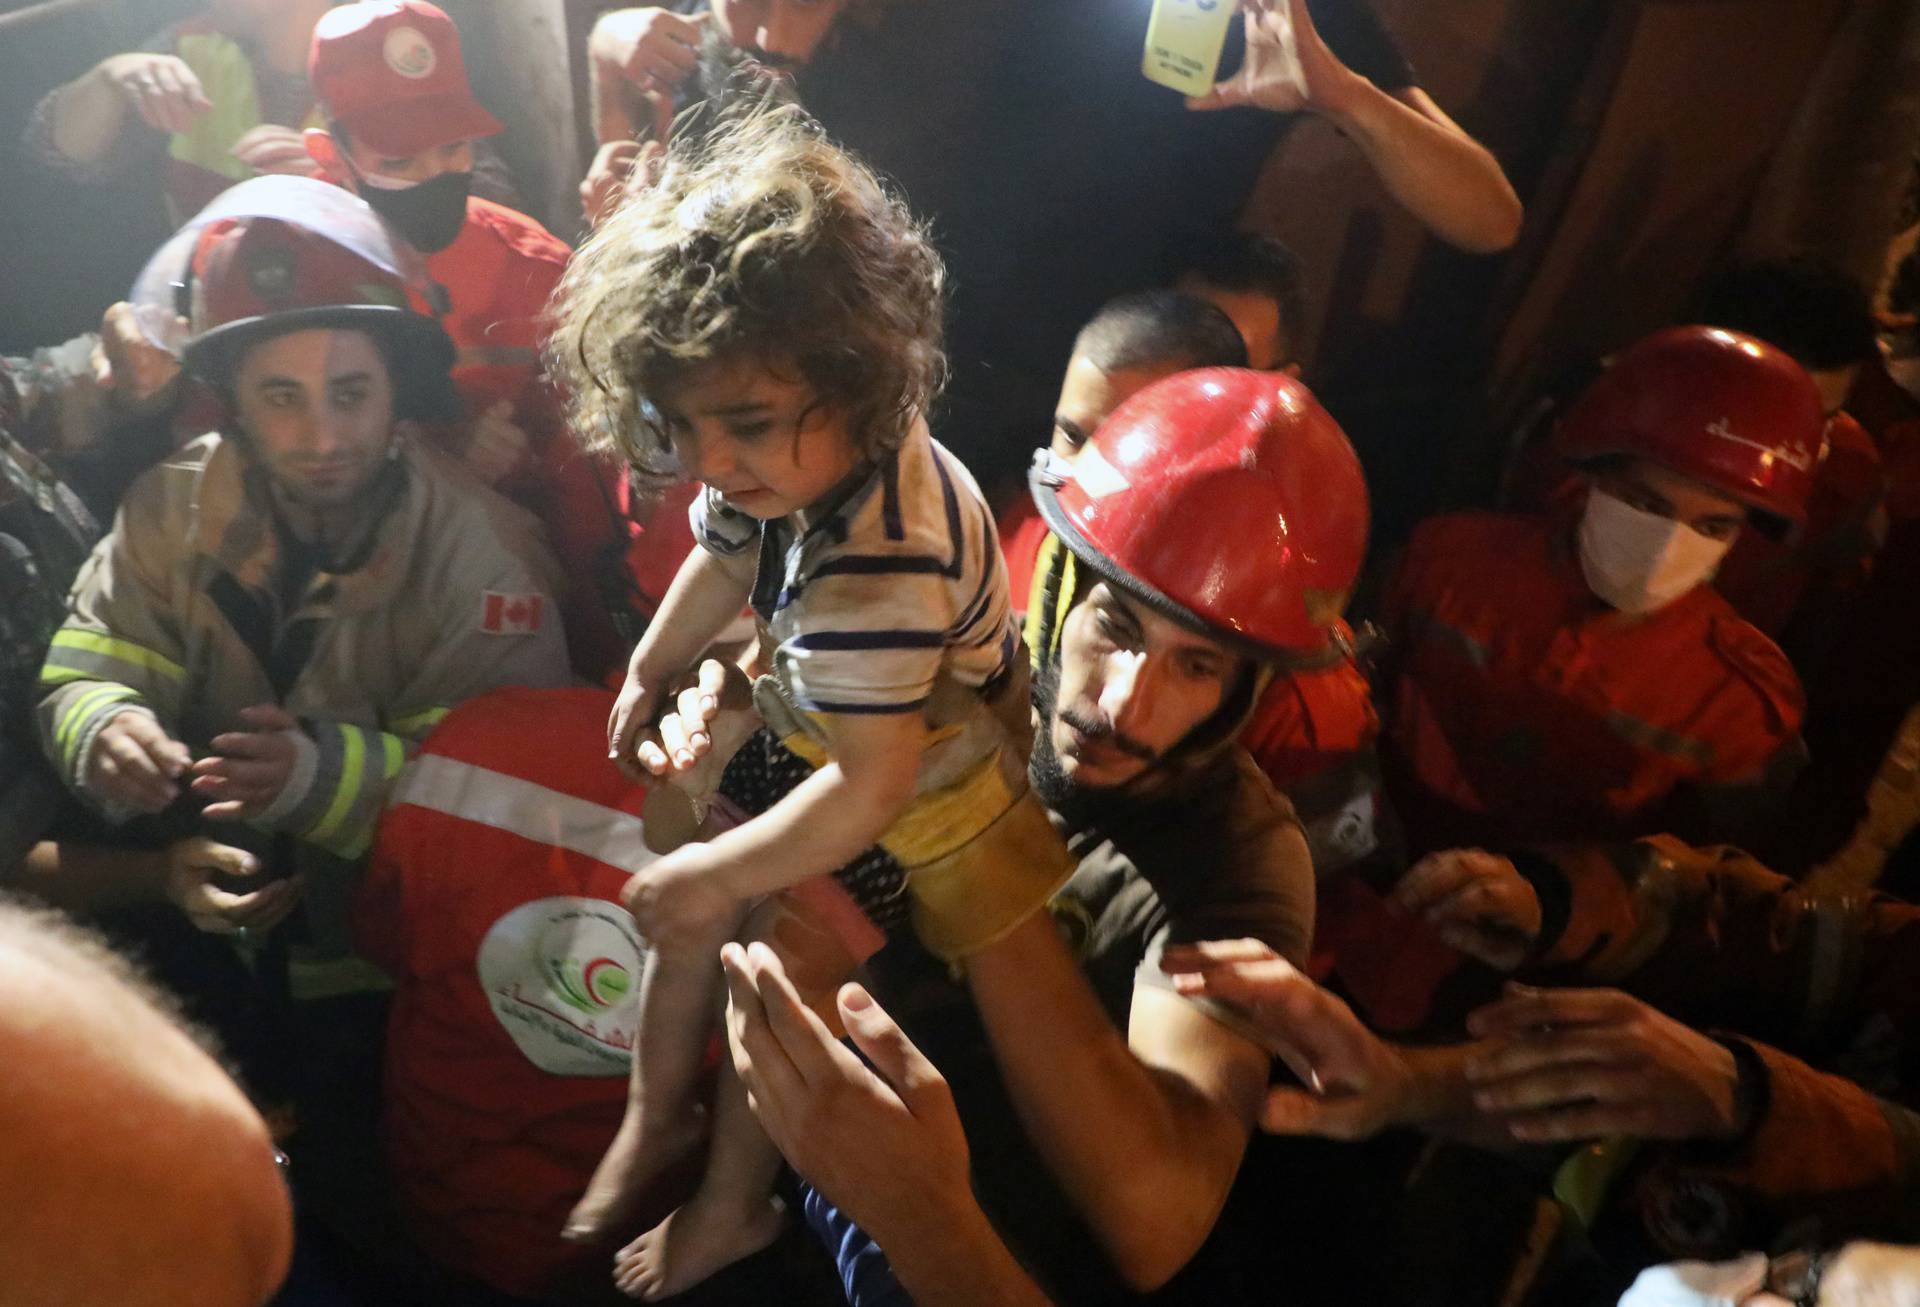 Rescuers carry a child that was evacuated from a building after a fuel tank exploded in the al-Tariq al-Jadida neighborhood of Beirut